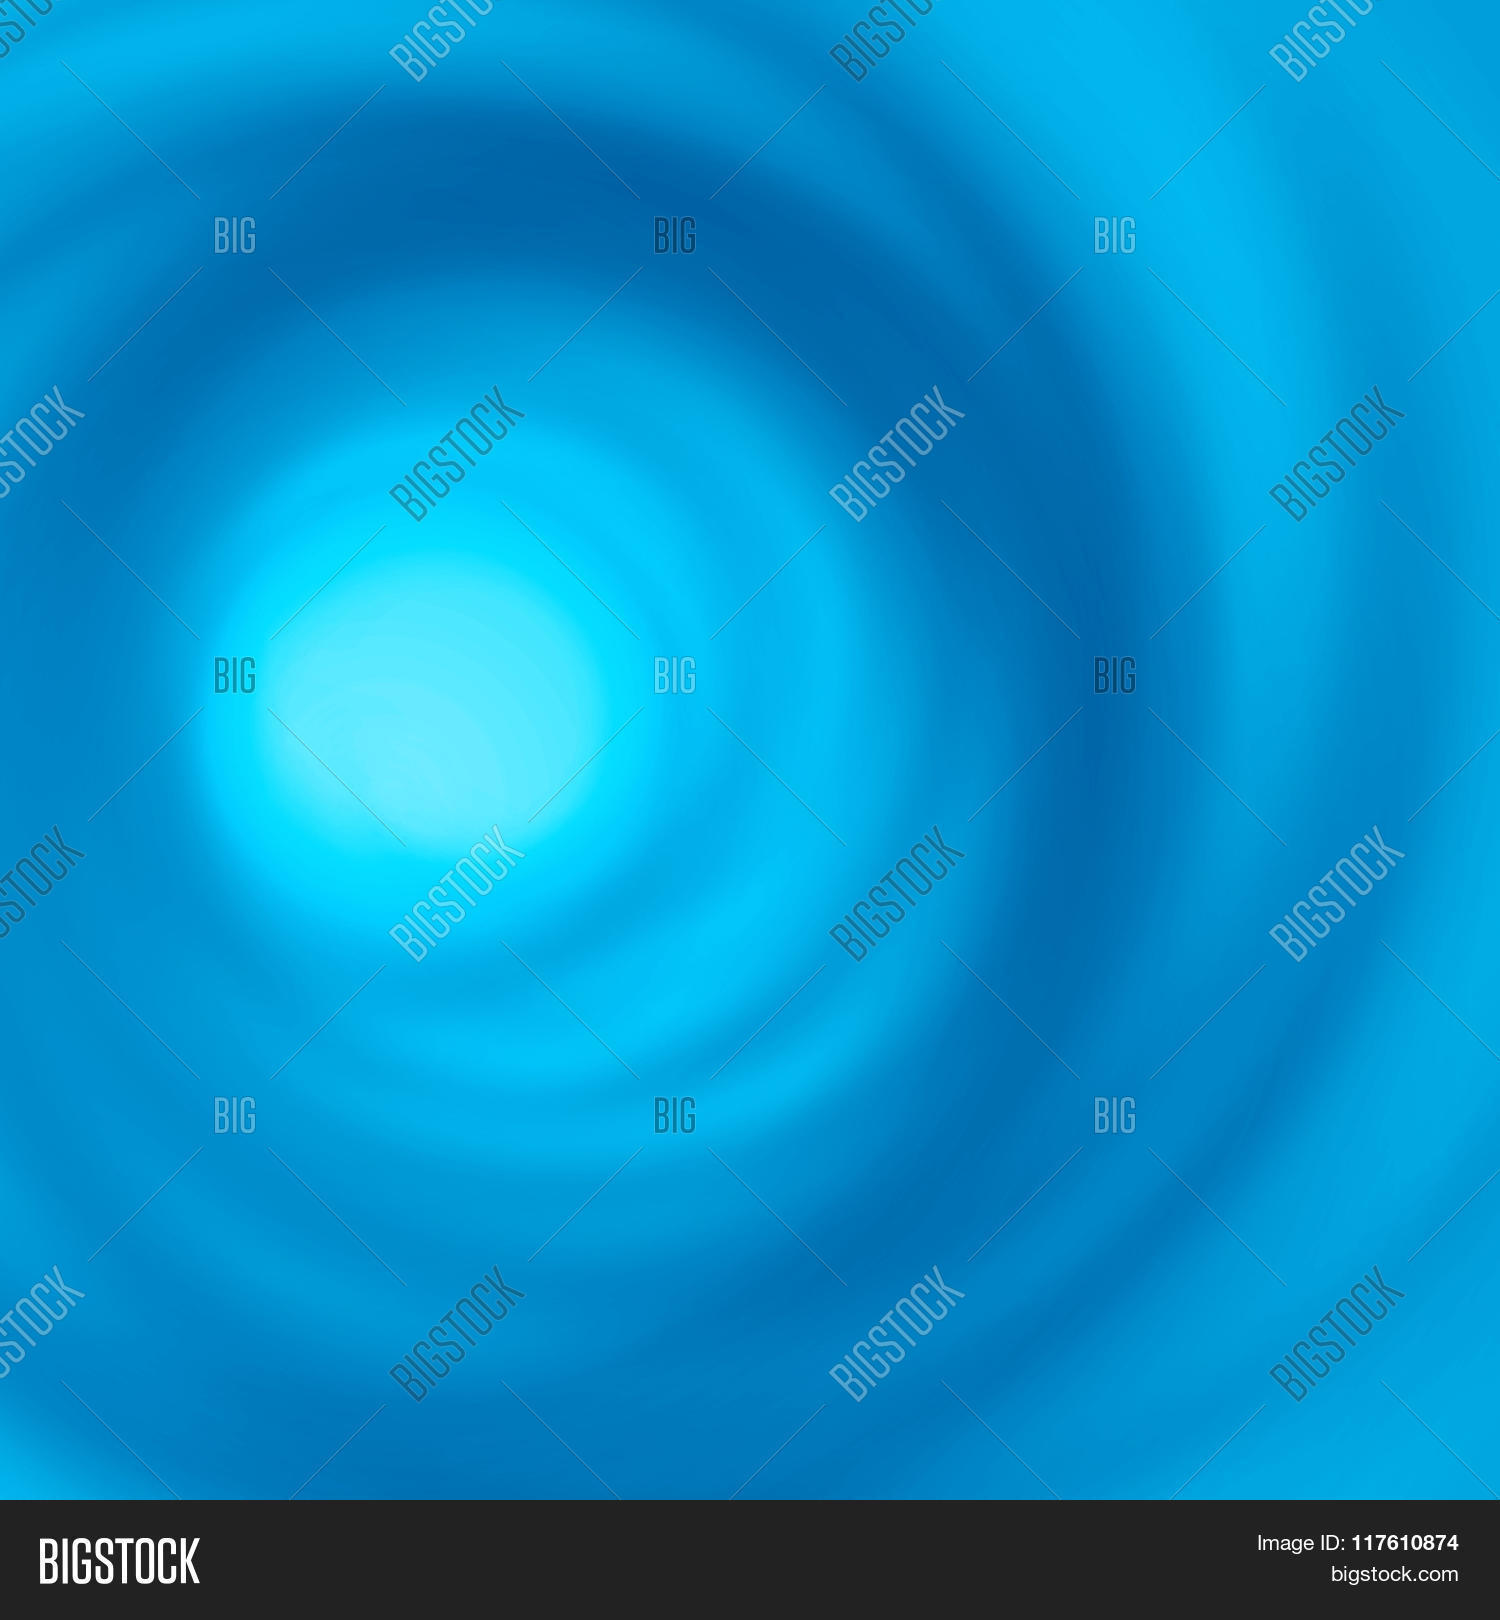 Blue Smooth Twist Vector Photo Free Trial